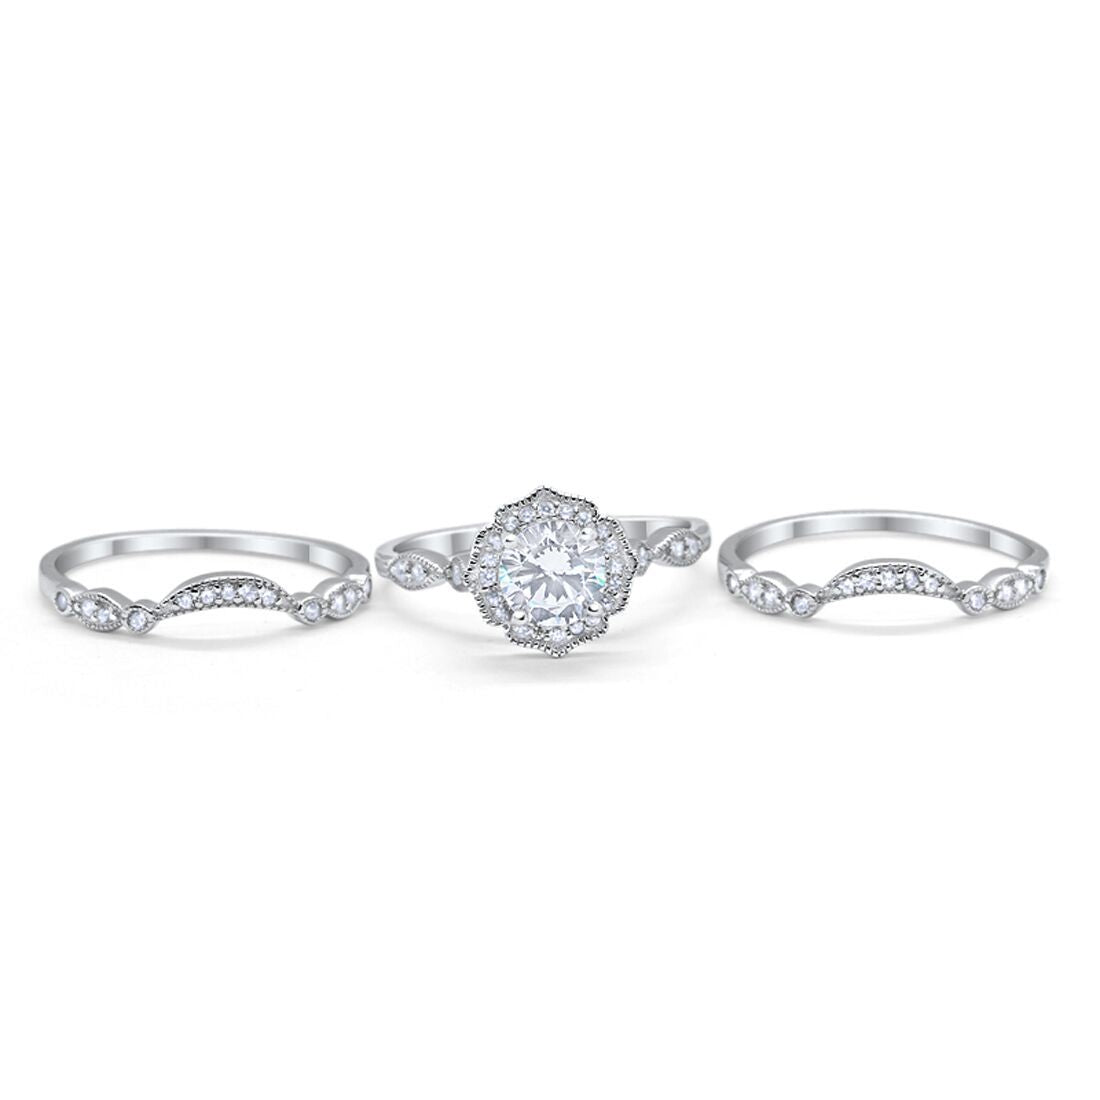 Three Piece Engagement Ring Band Simulated CZ 925 Sterling Silver